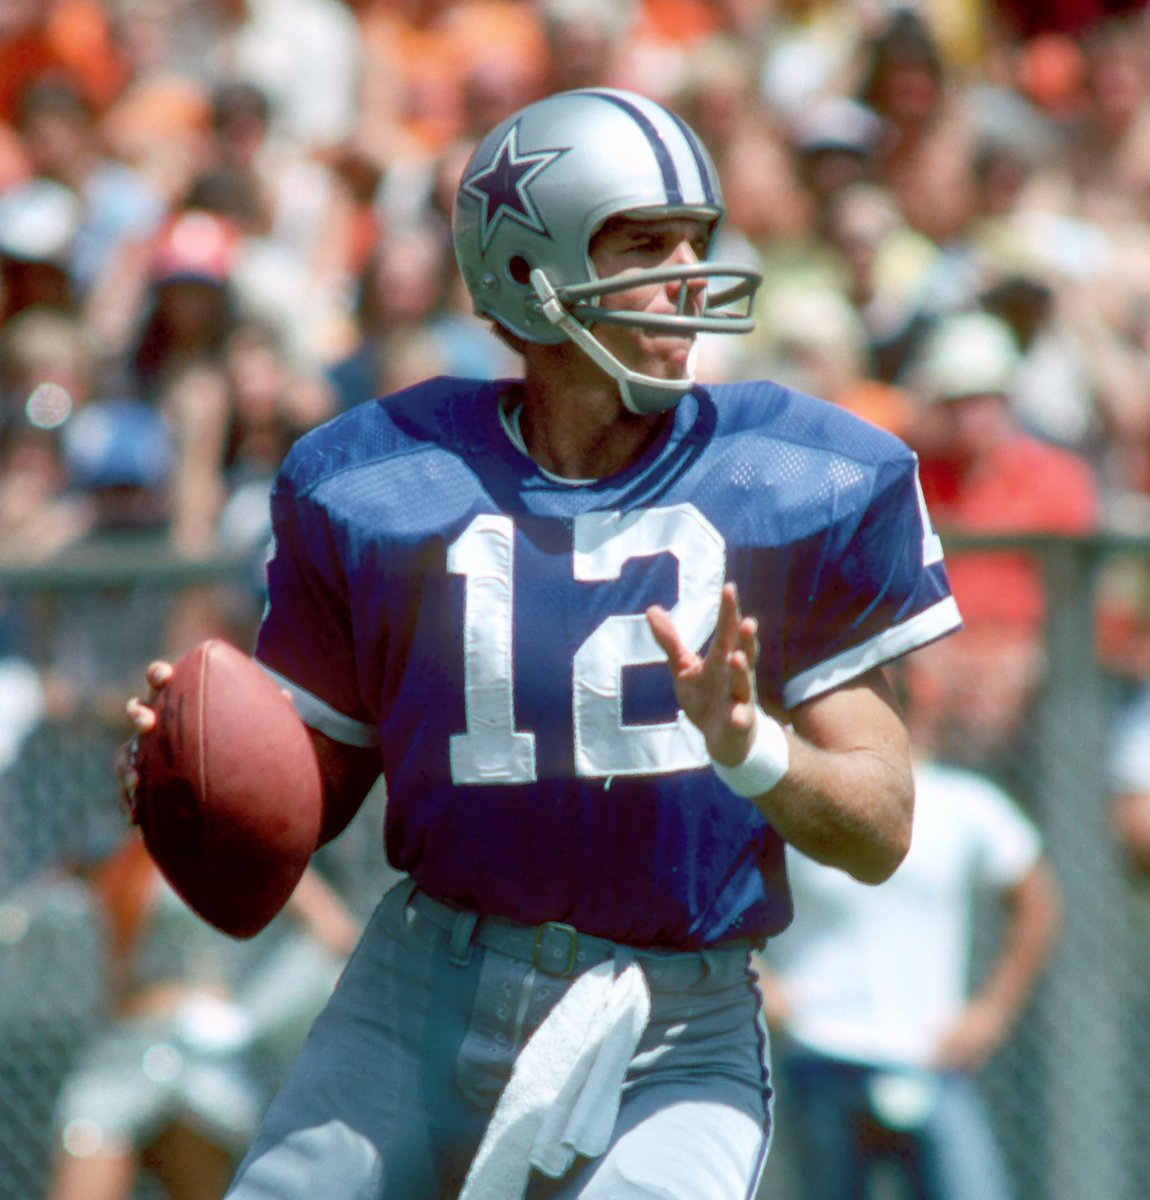 "WINNER: The fans have decided that Roger Staubach (70%) claims victory over Bob Lilly (30%) in @TimCowlishaw's ""Mr. Cowboy"" bracket final! 🏆   Full results: https://bit.ly/2y3NNFb   #CowboysNation"